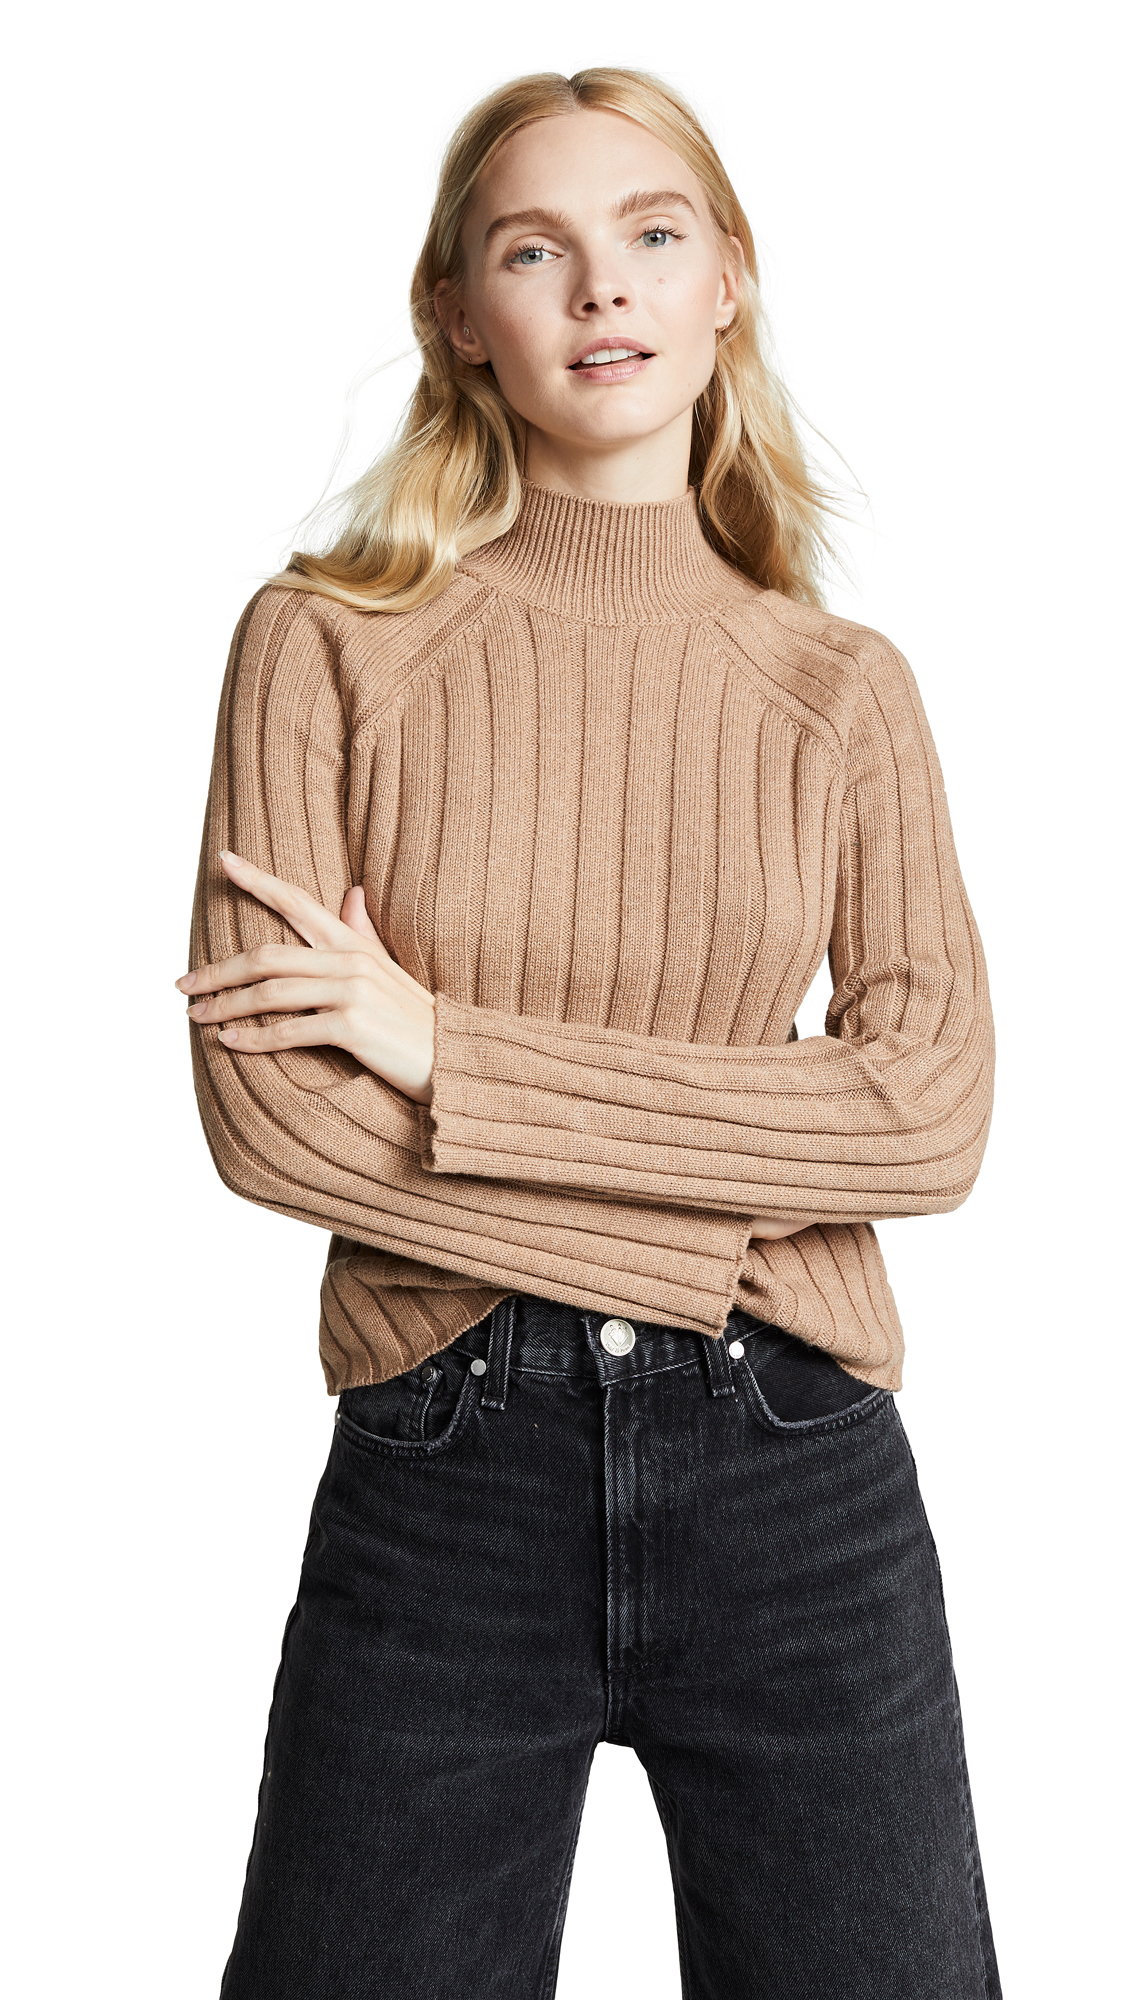 BOP BASICS Wide Rib Turtleneck Sweater in Camel